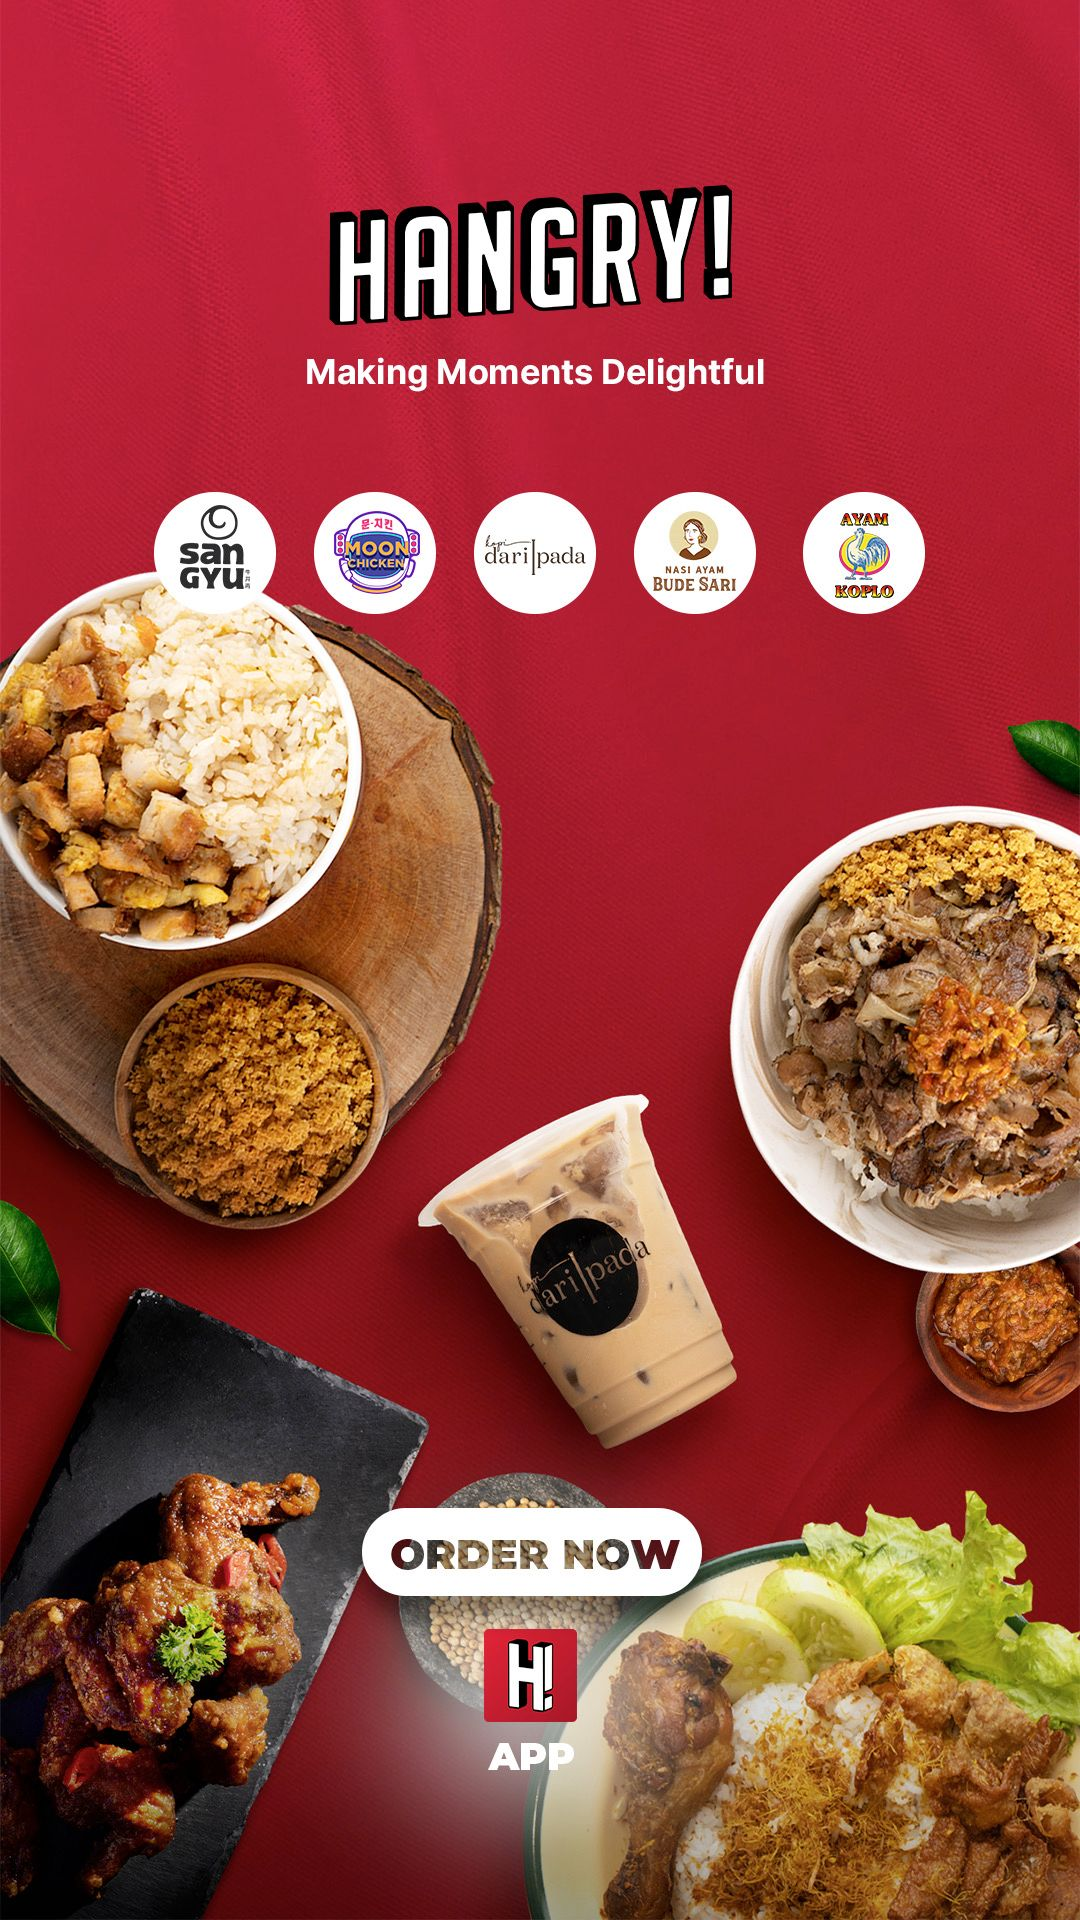 Access here alternative investment news about Indonesian F&b Startup Hangry In Talks To Raise Up To $15M In Series A